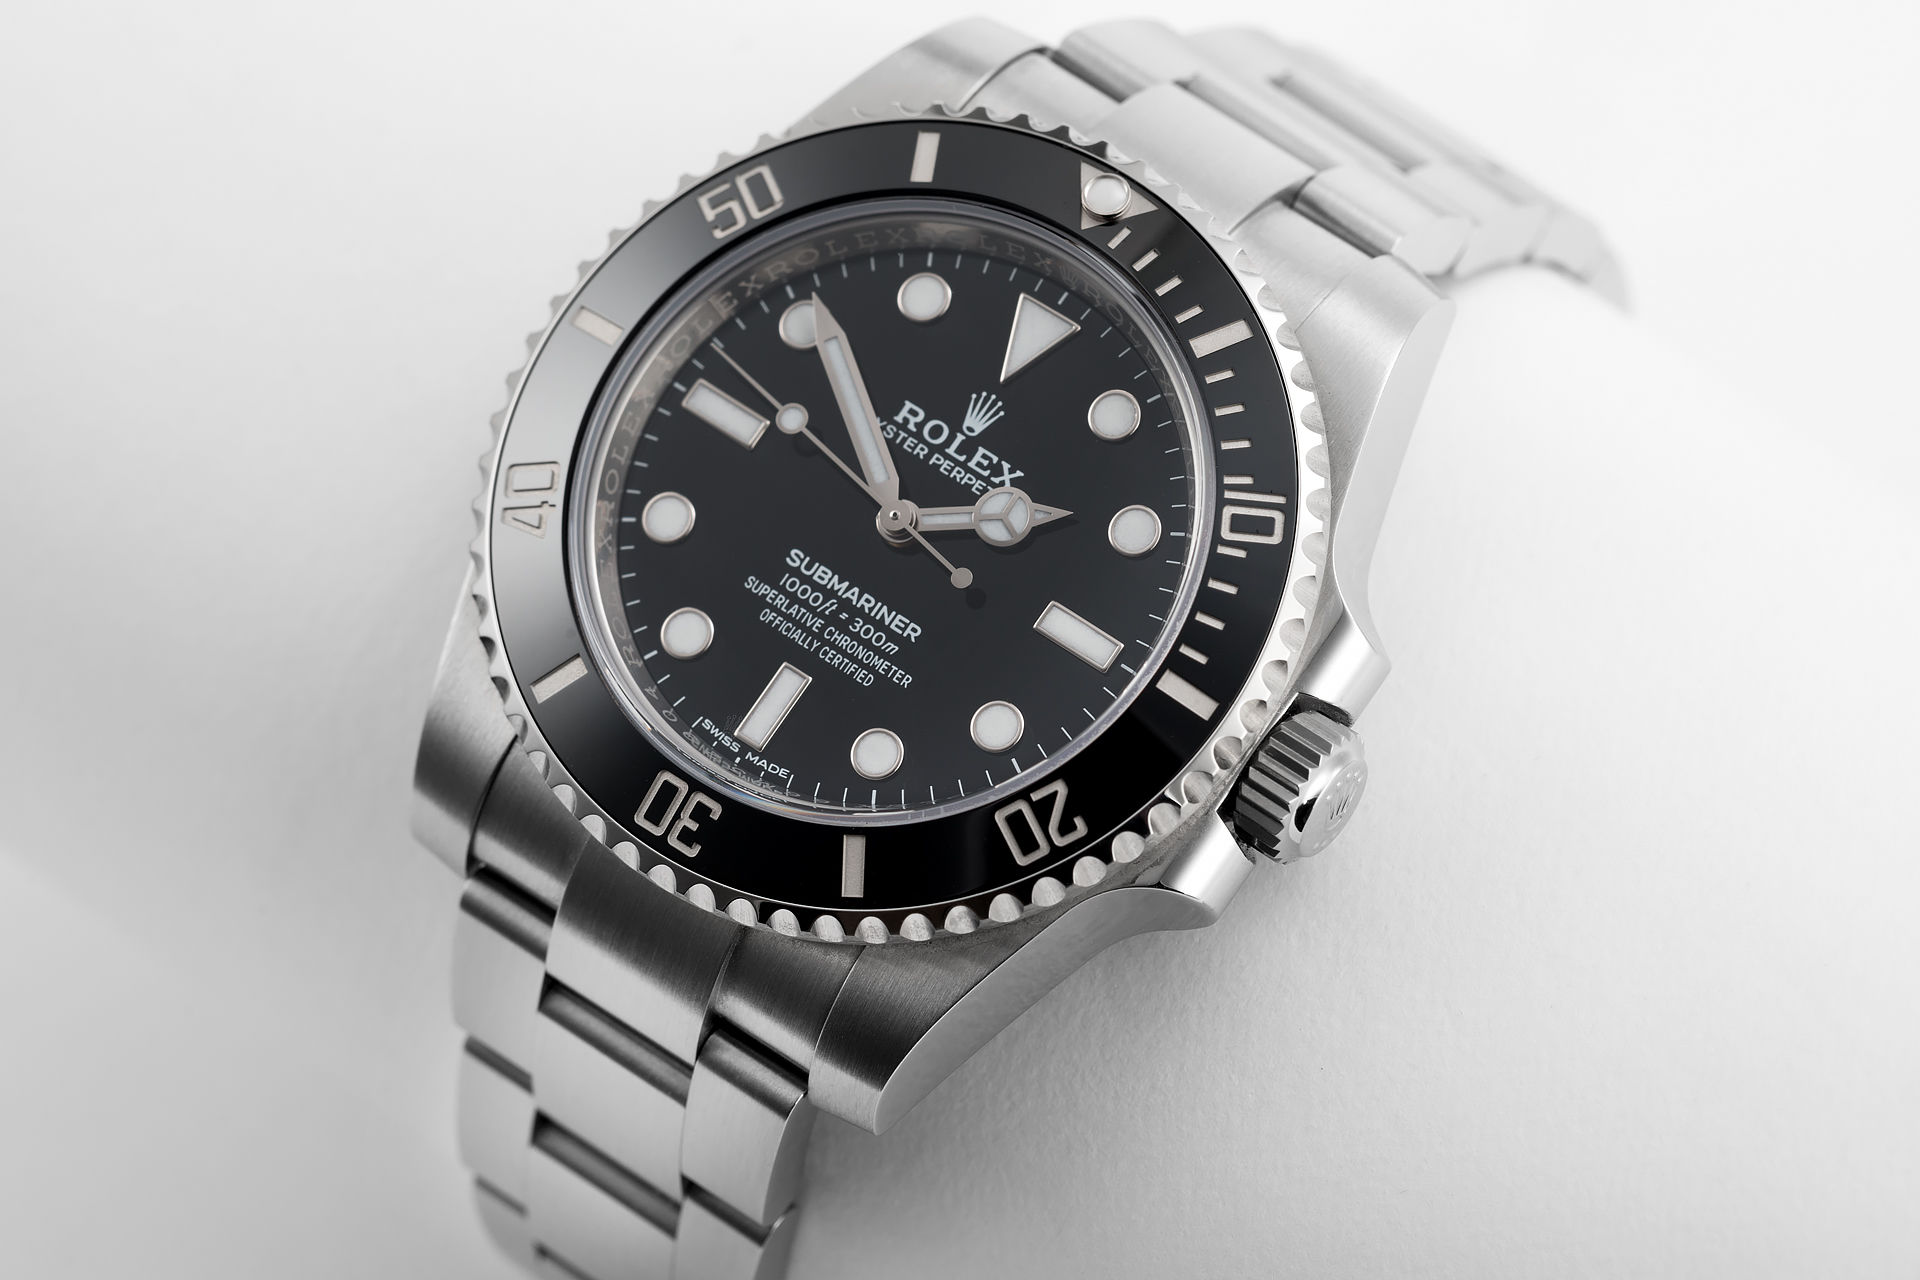 brand new 2018 ref 114060 rolex submariner watches the watch club. Black Bedroom Furniture Sets. Home Design Ideas